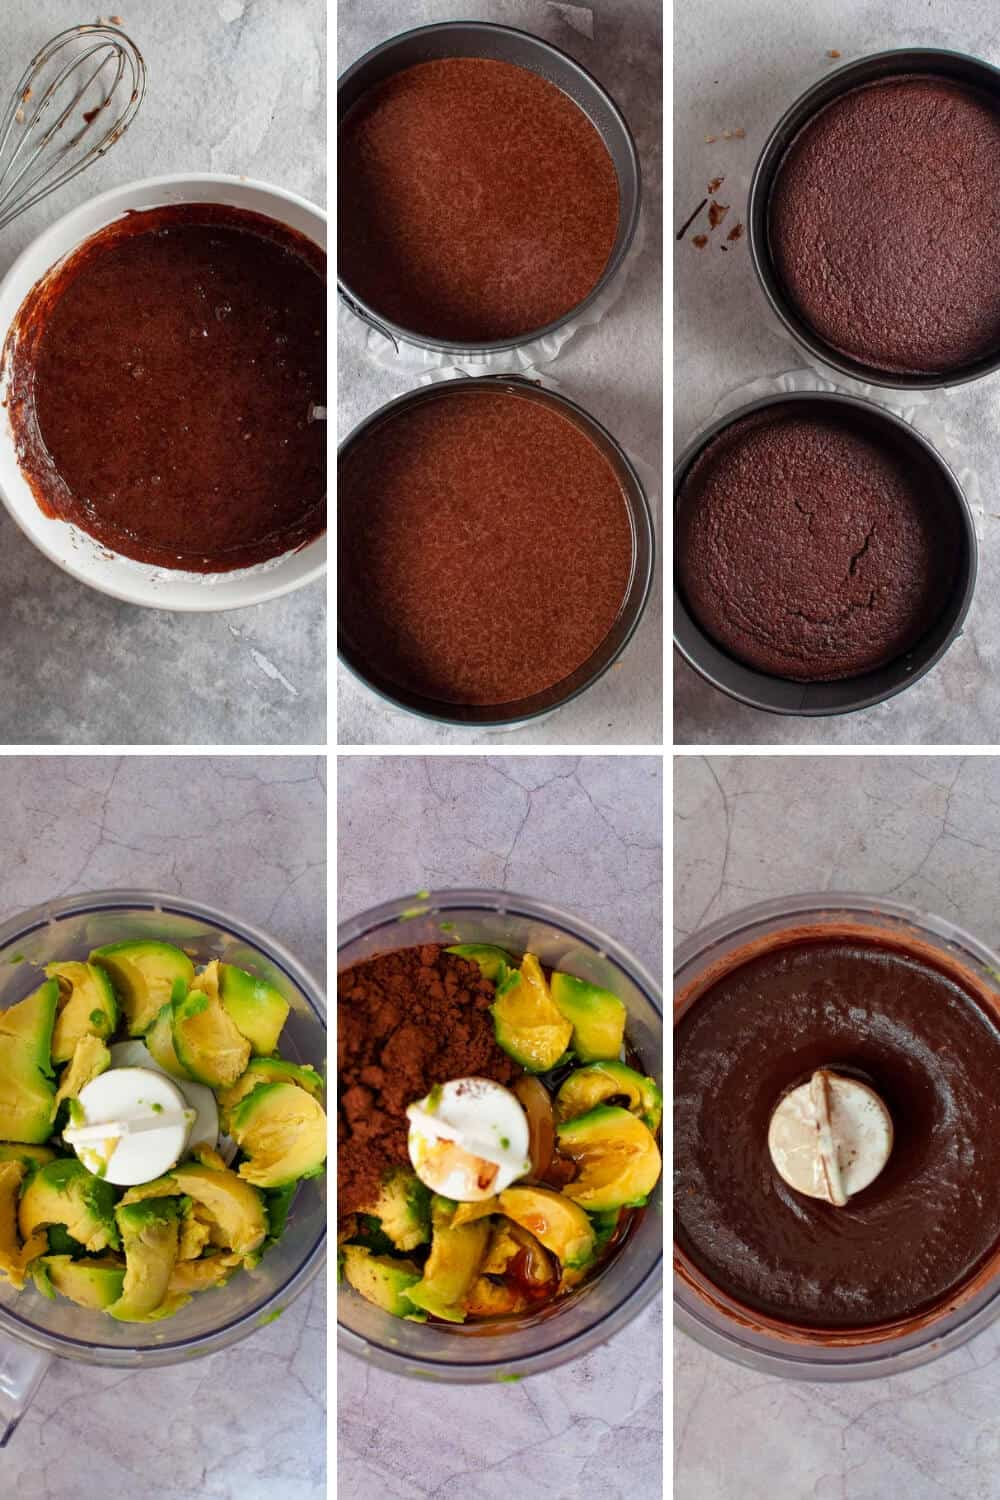 Chocolate Avocado Cake preparation collage two